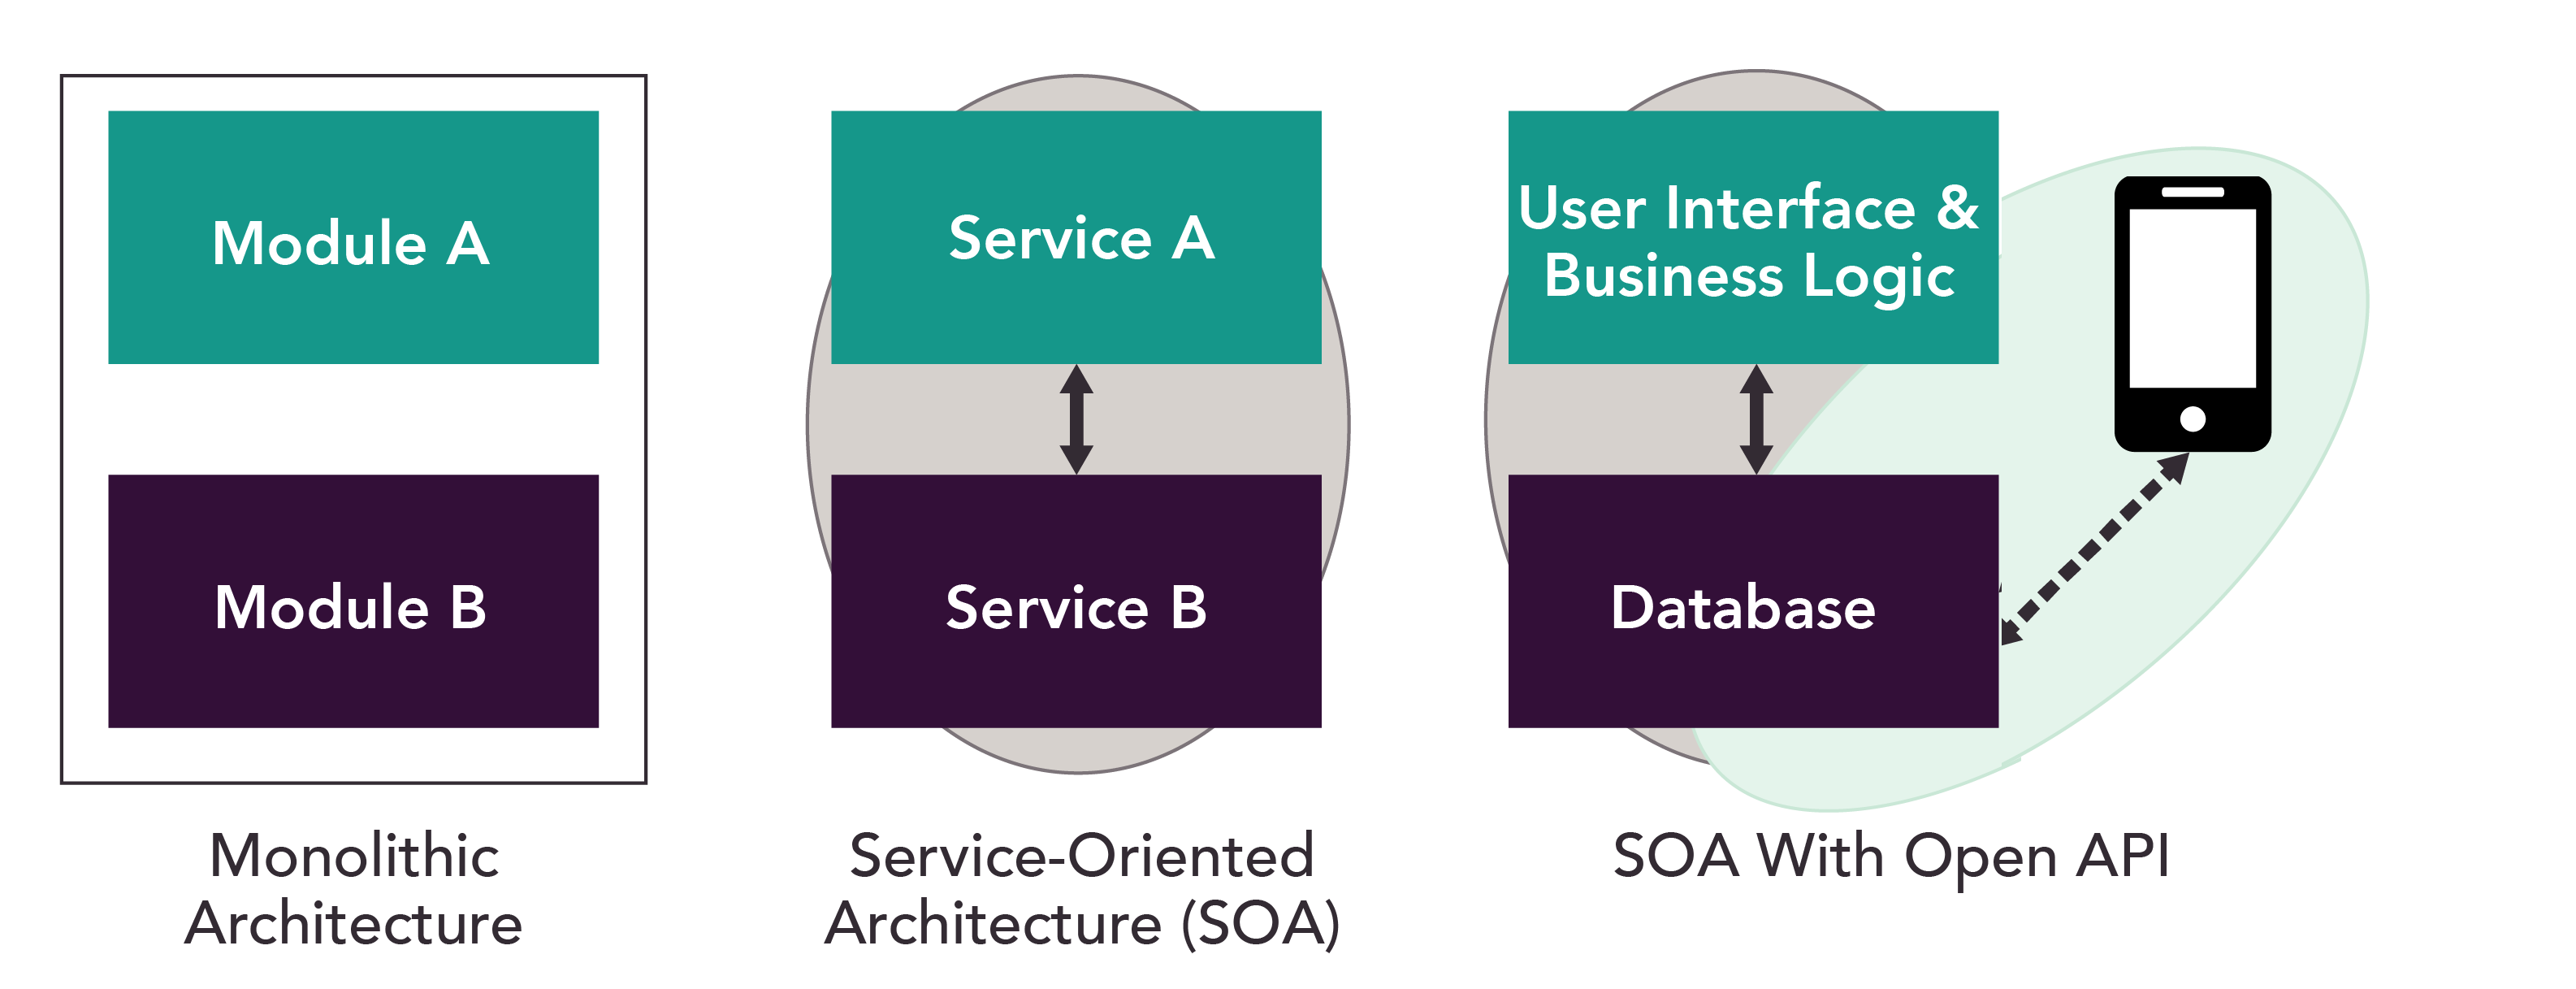 Monolithic to SOA Architecture v3-01